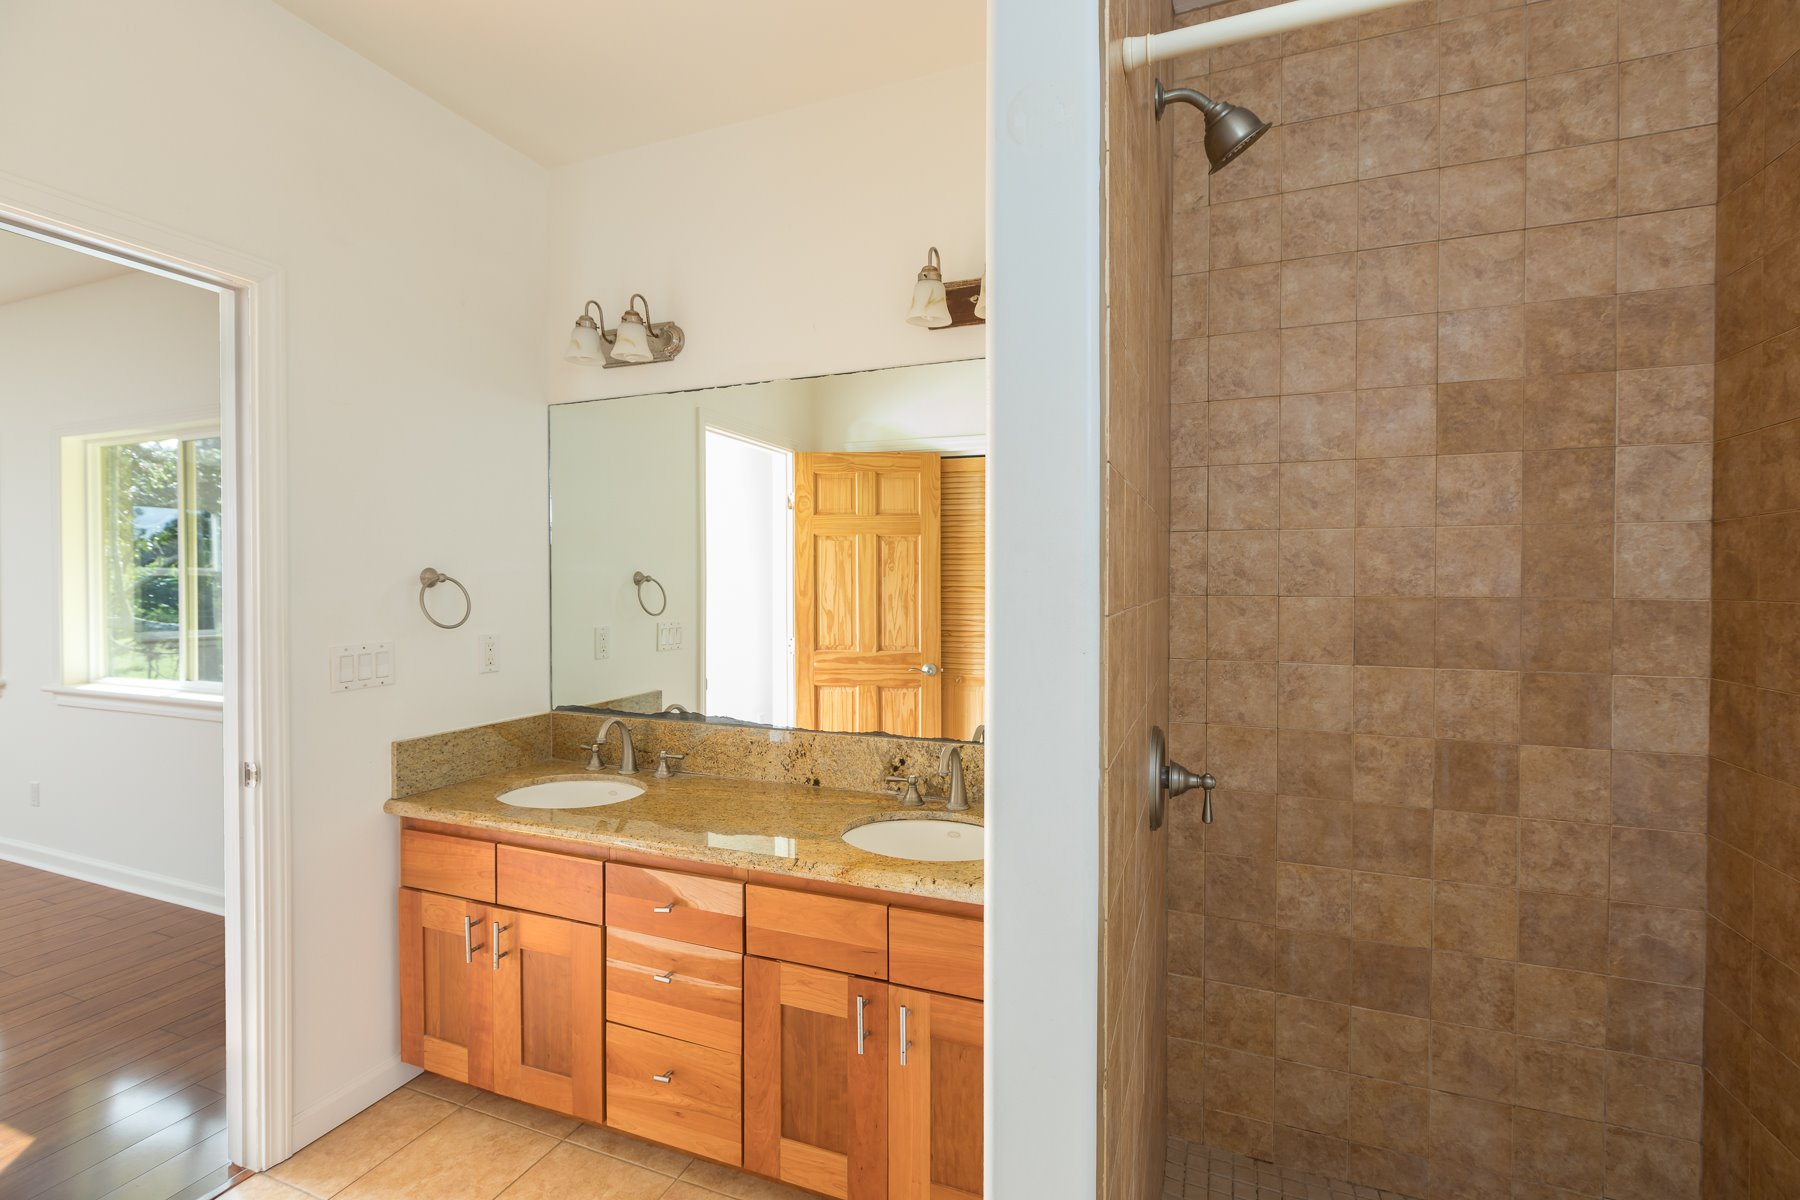 Wood floors, granite counter tops, 2 sinks in each bathroom and expansion potential.